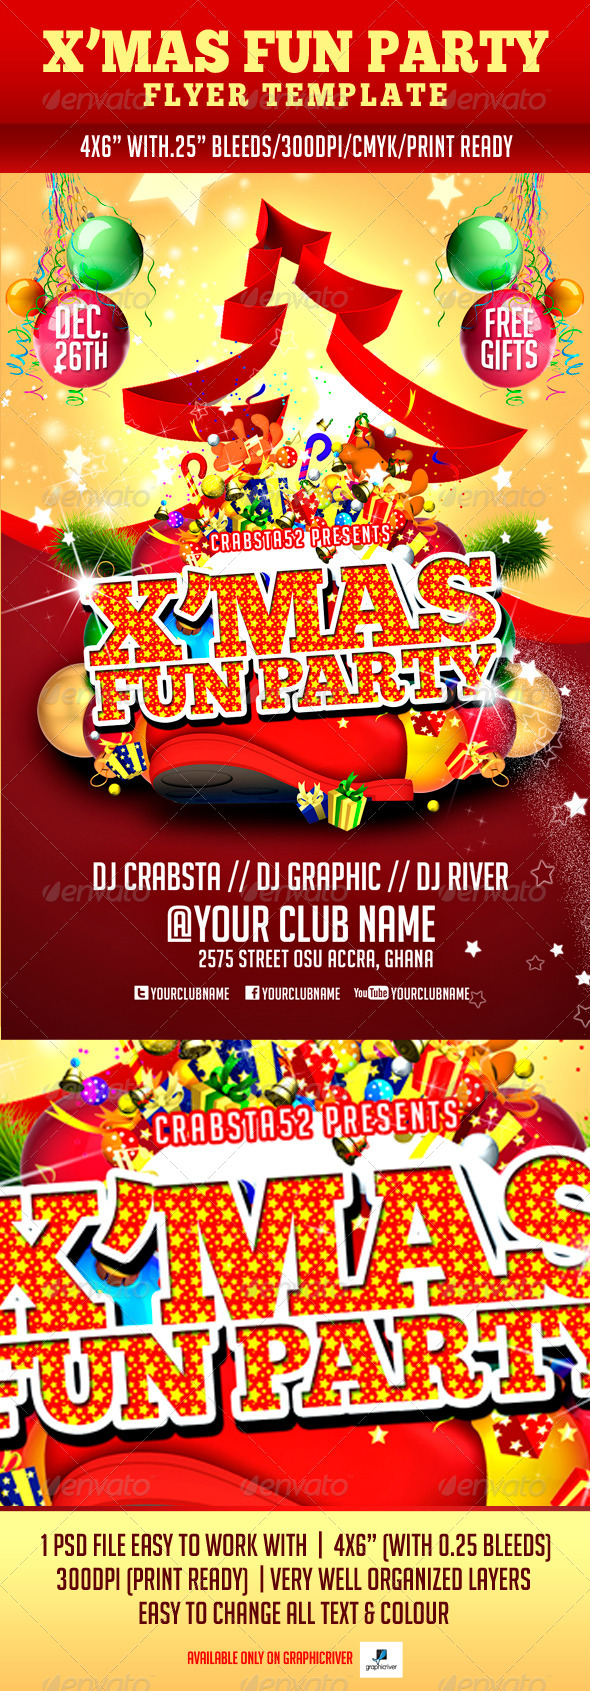 X'mas Fun Party Flyer Template - Holidays Events